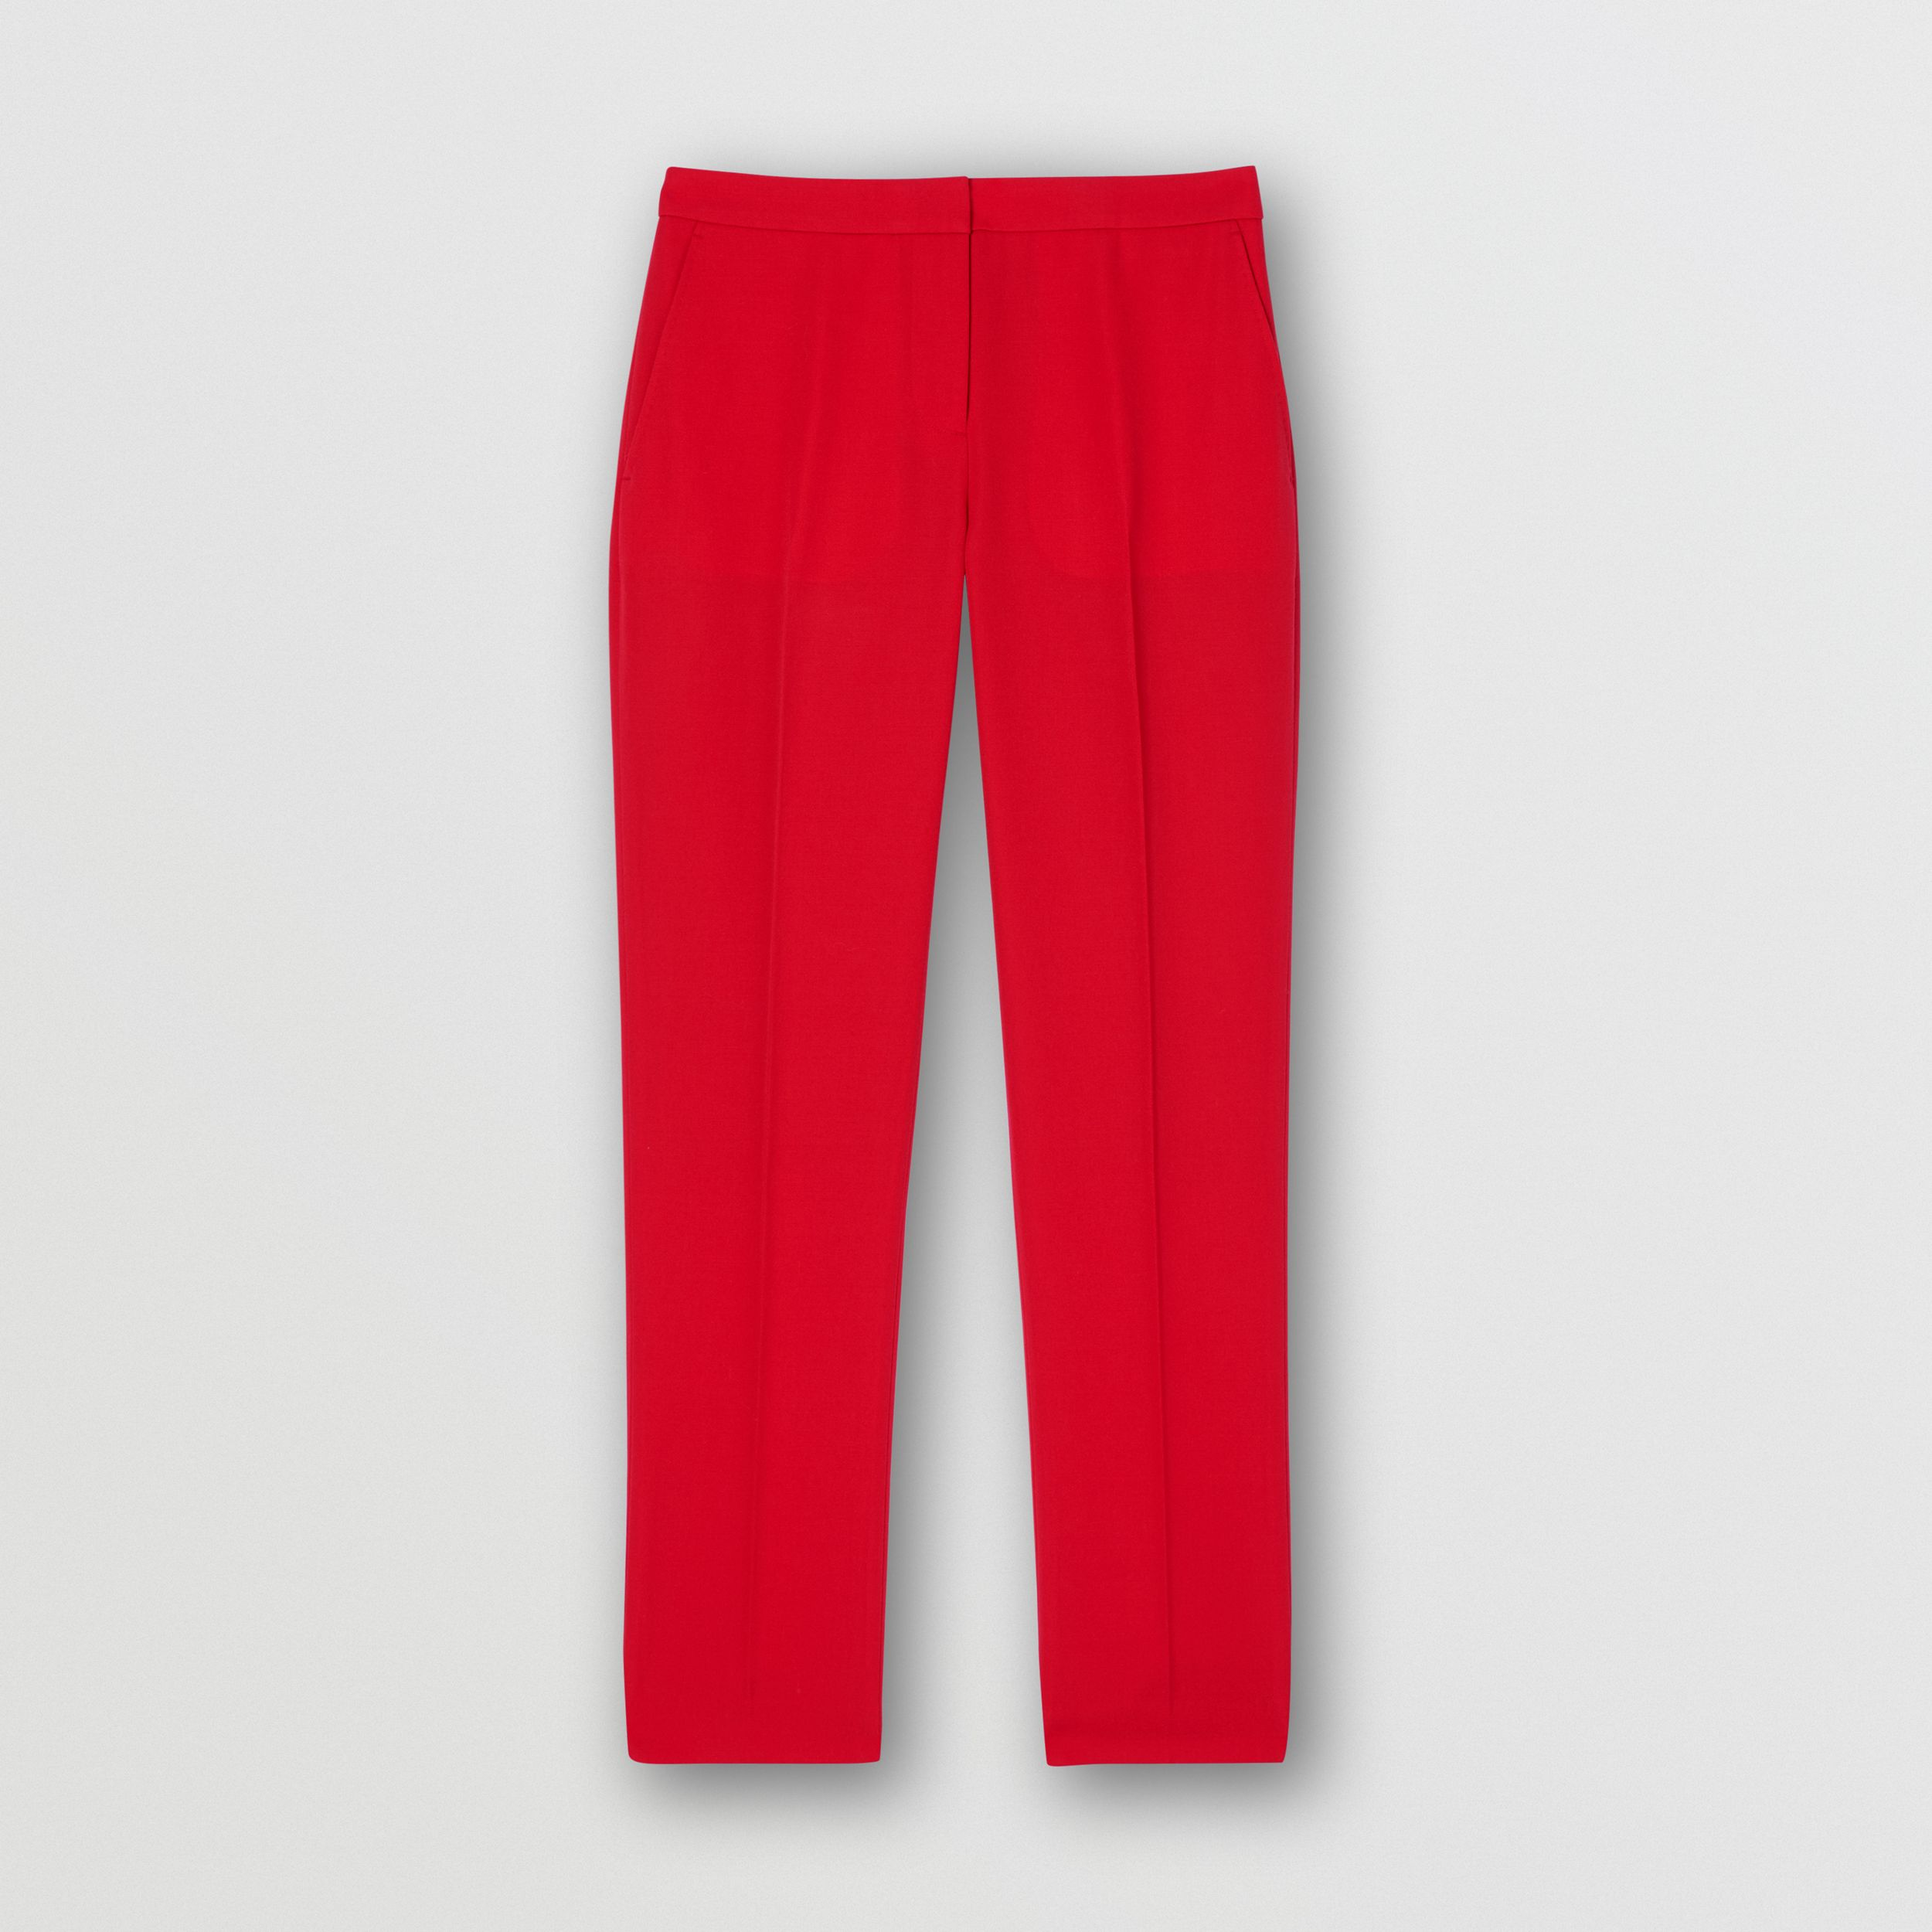 Wool Tailored Trousers in Bright Red - Women | Burberry - 4